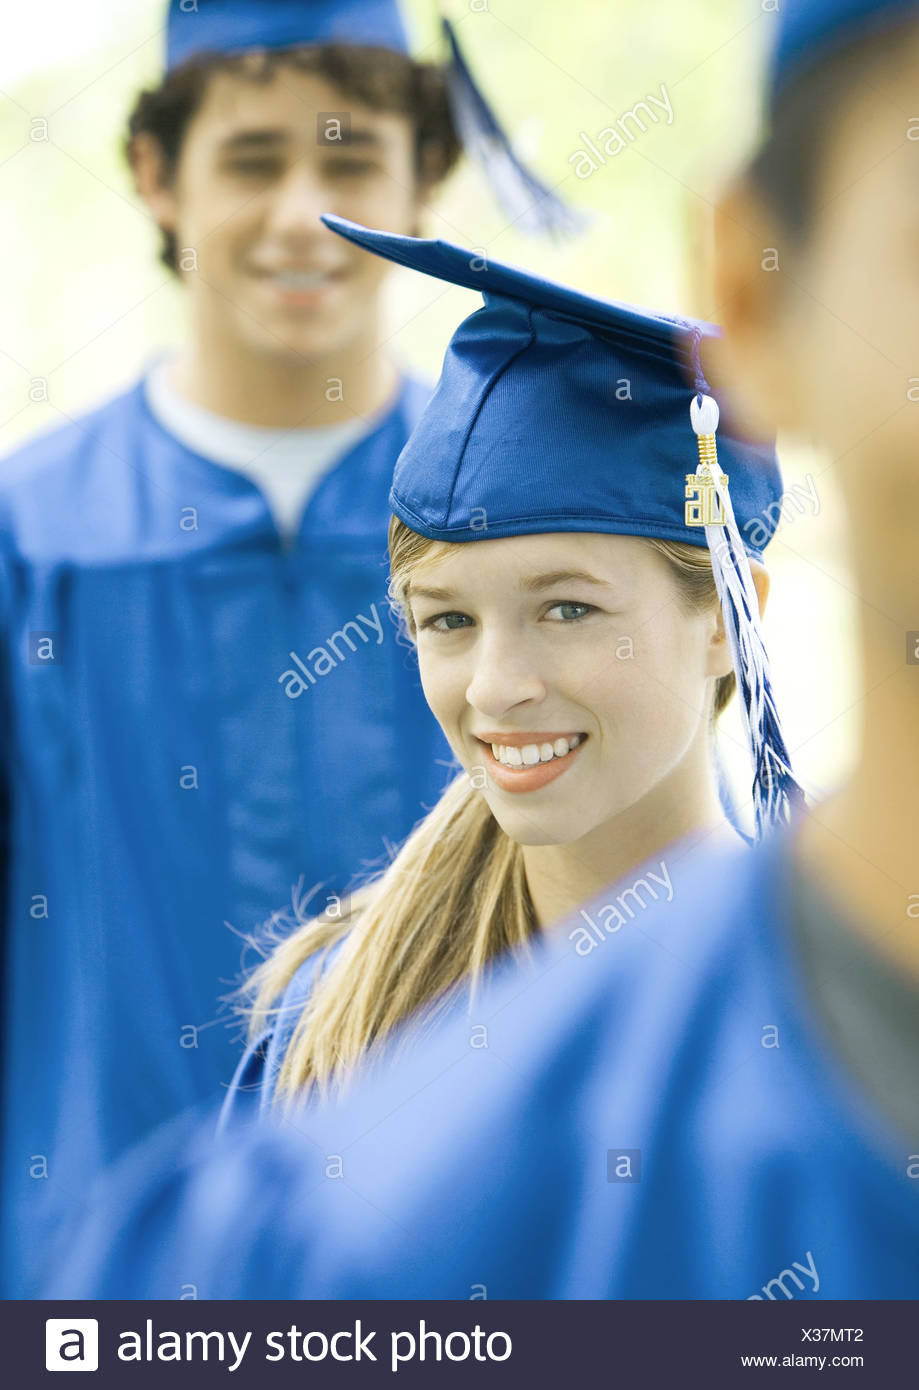 Graduates in line, smiling, focus on young woman - Stock Image